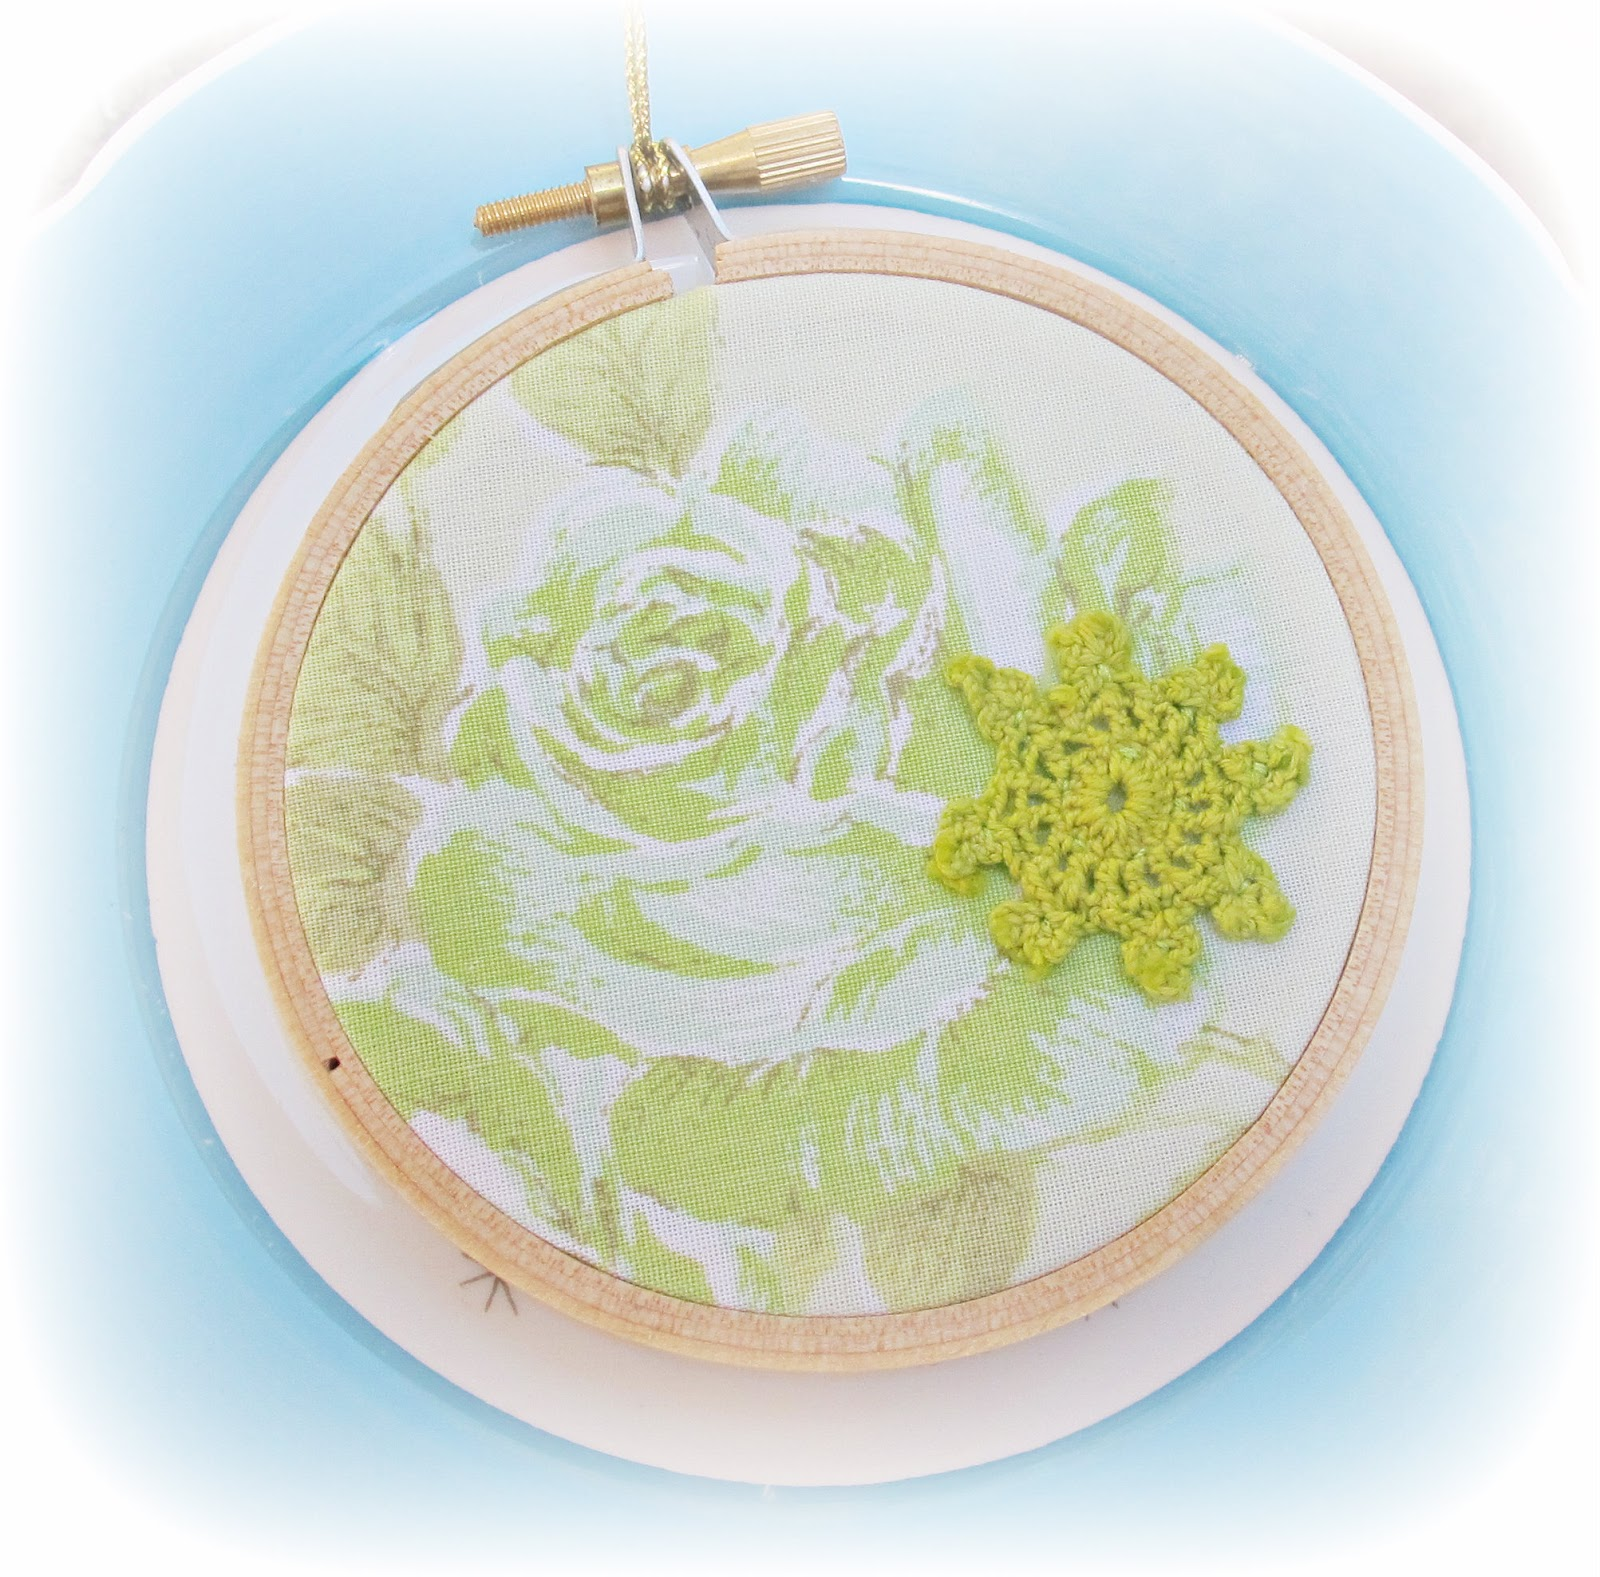 image vintage fabric christmas ornament embroidery hoop green roses bed linen chartreuse doily domum vindemia